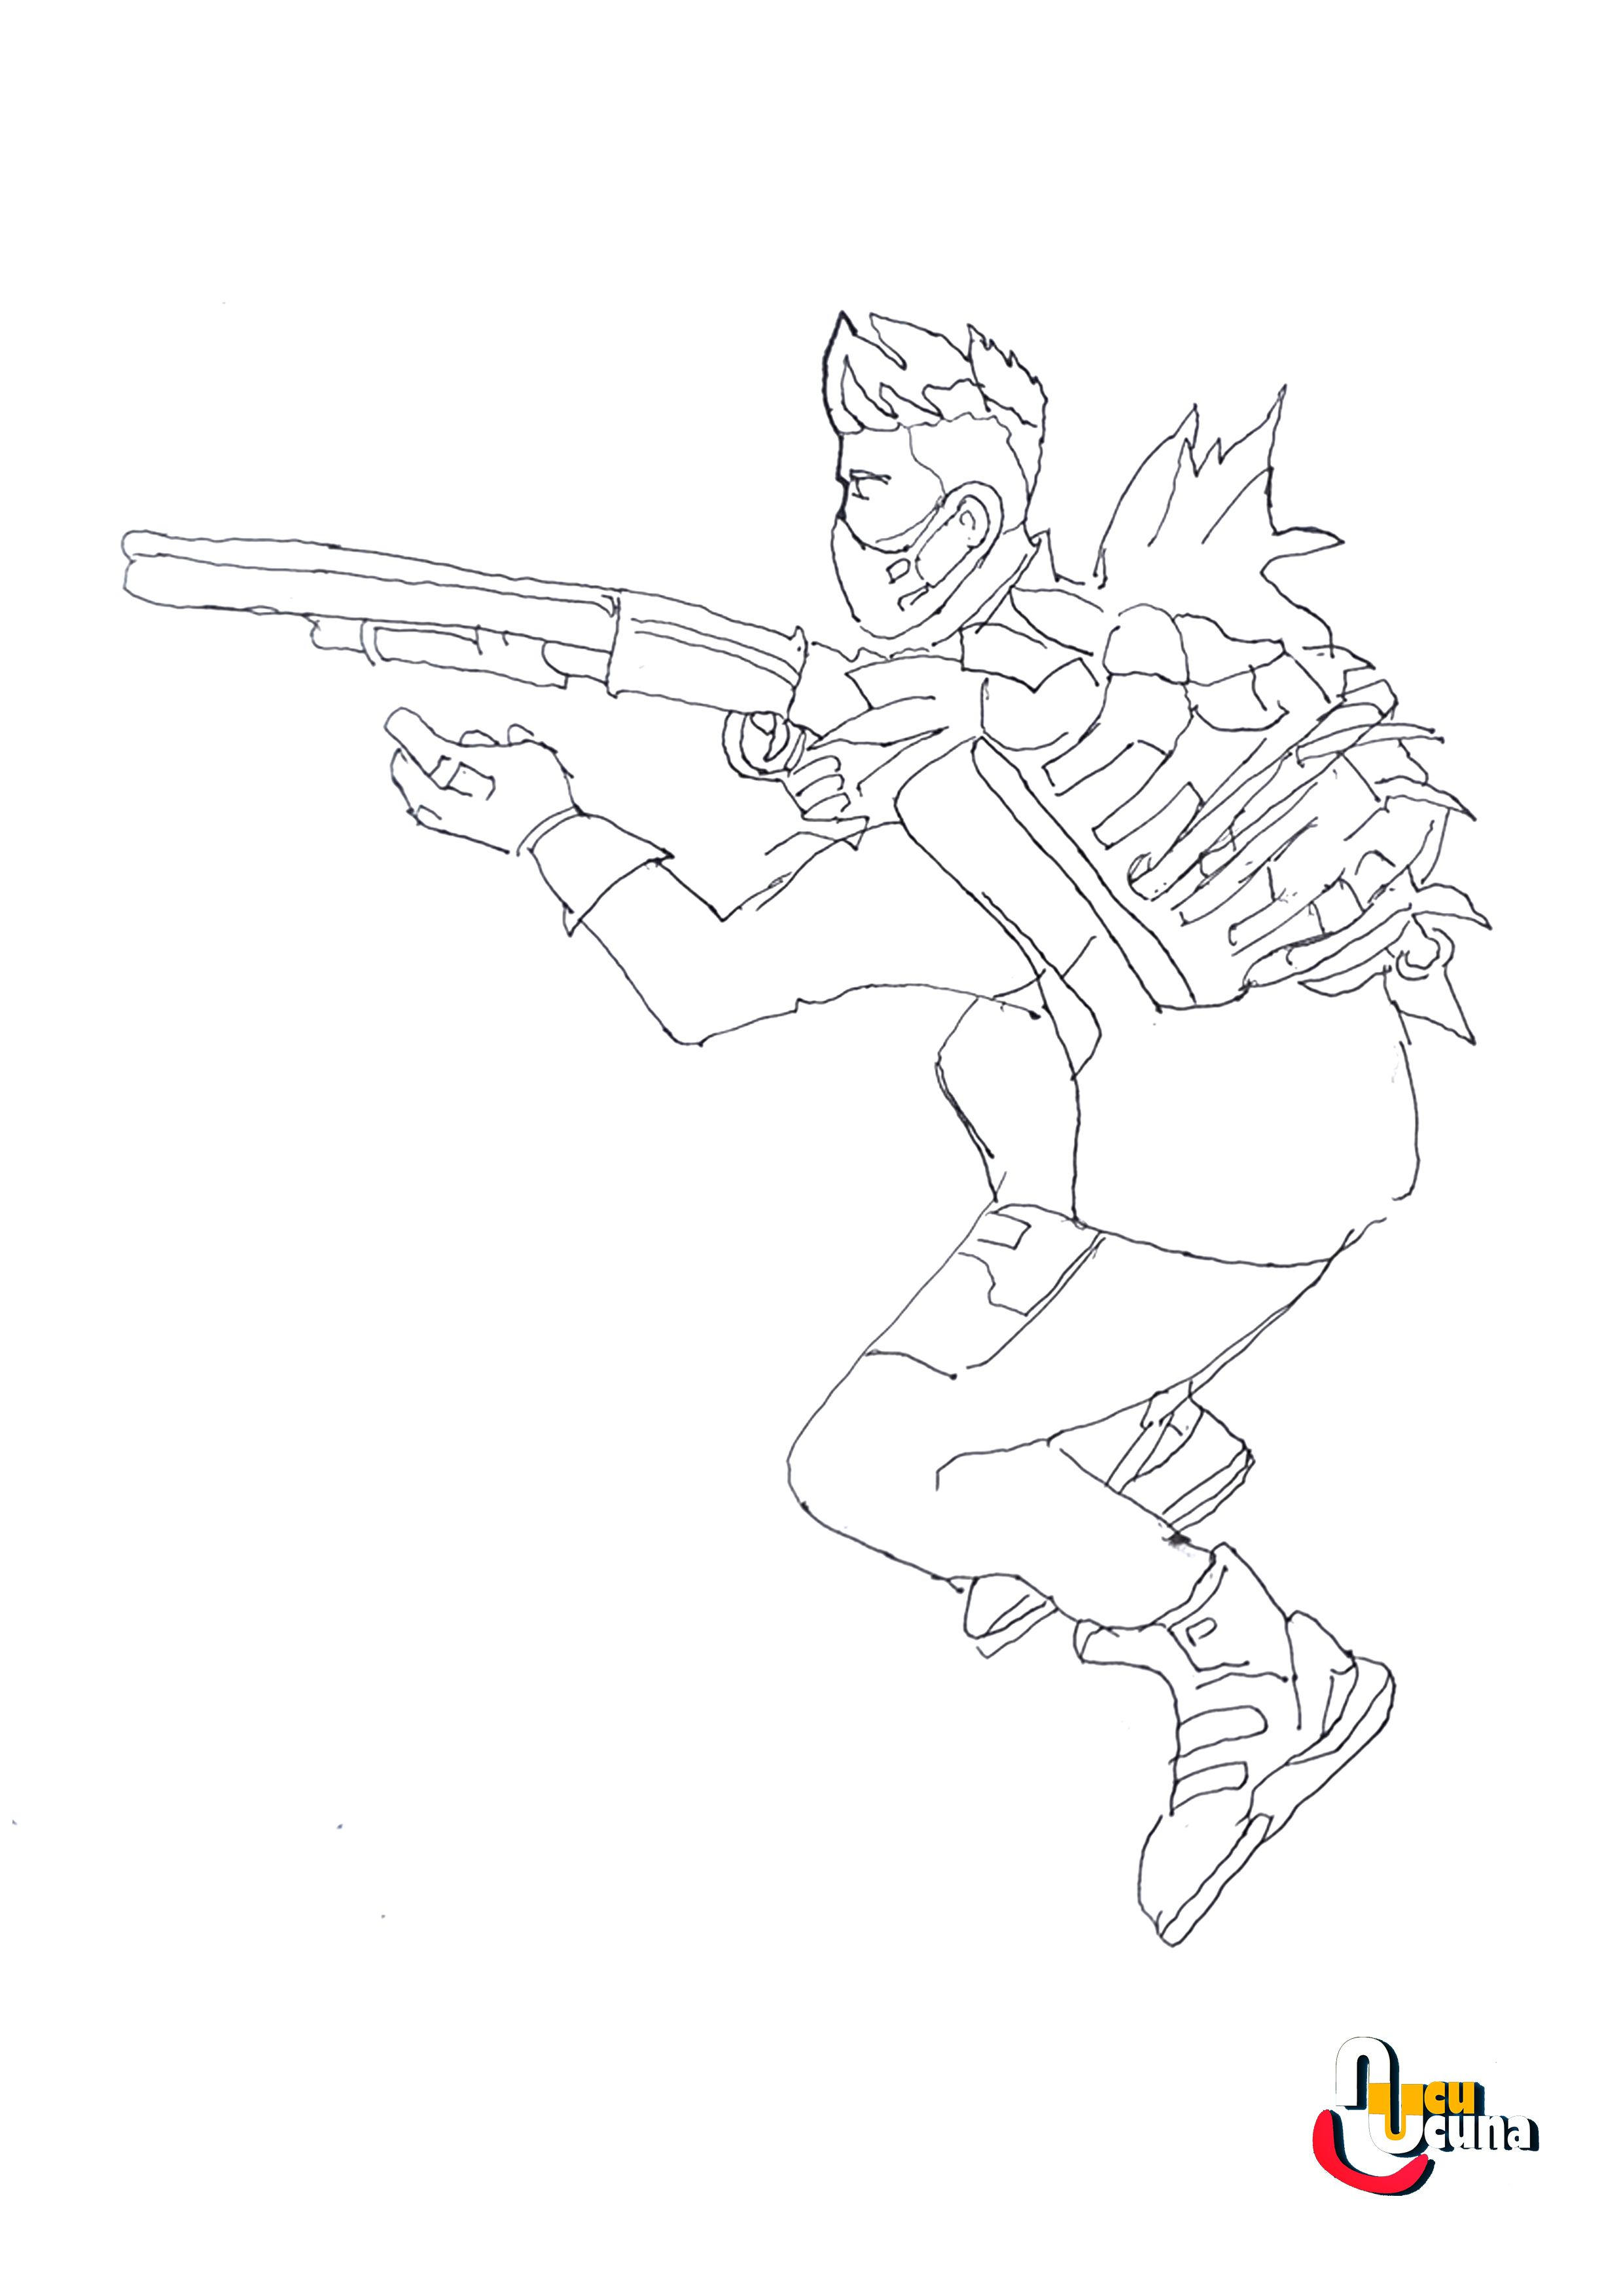 Omega Fortnite Gun Coloring Pages